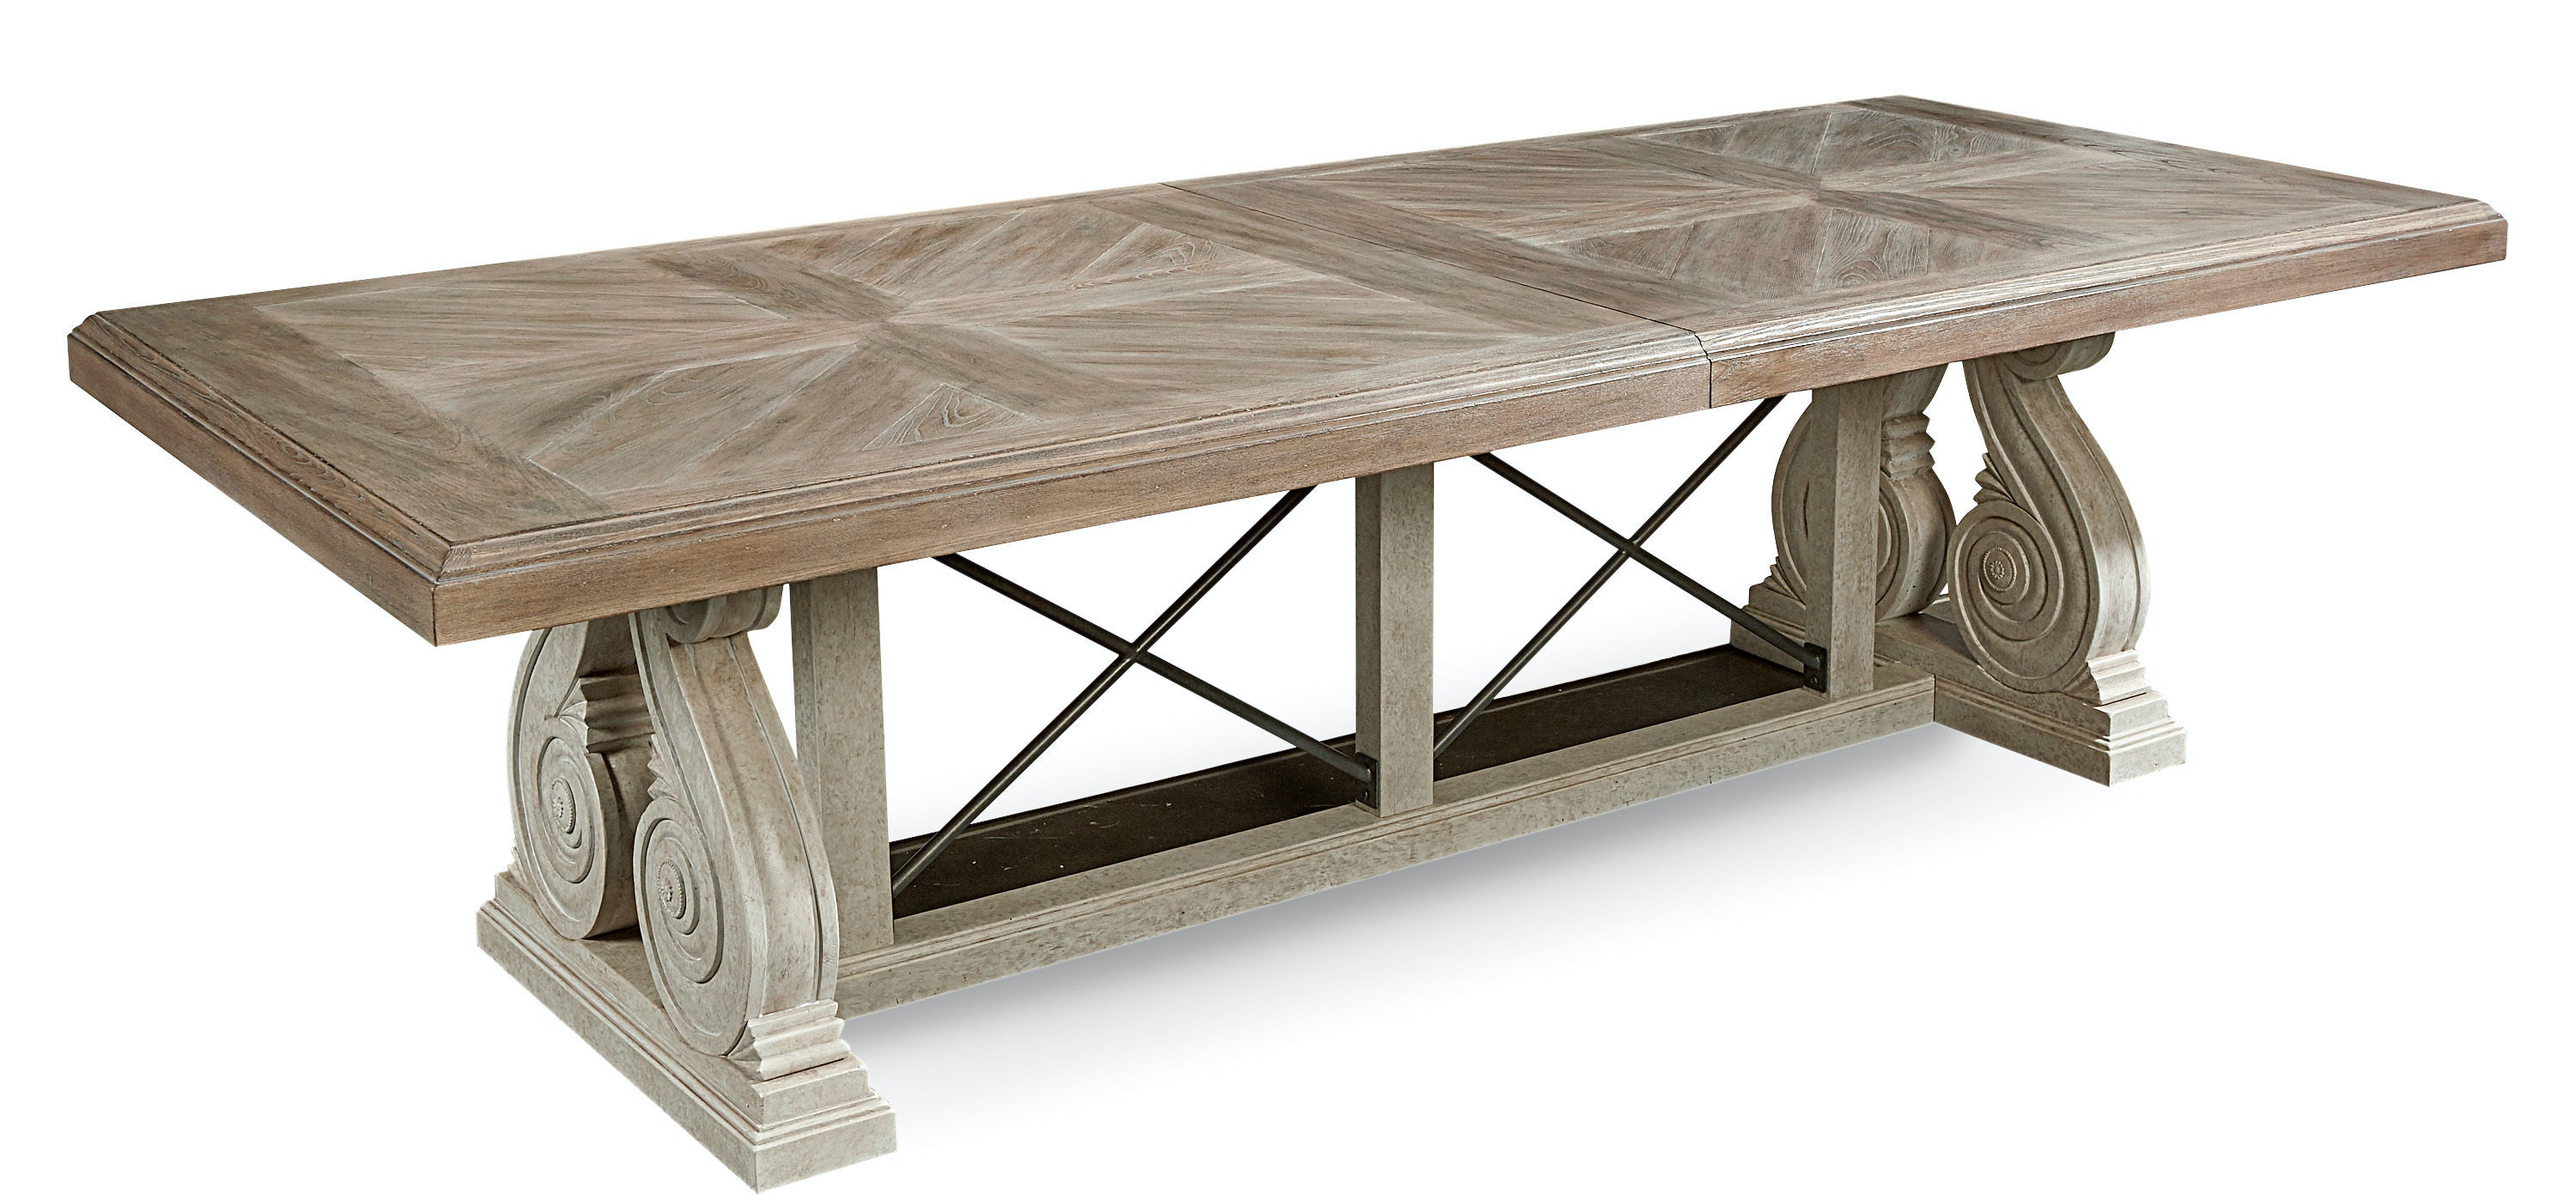 ART Furniture Pearce Dining Table 233221 2802 ...